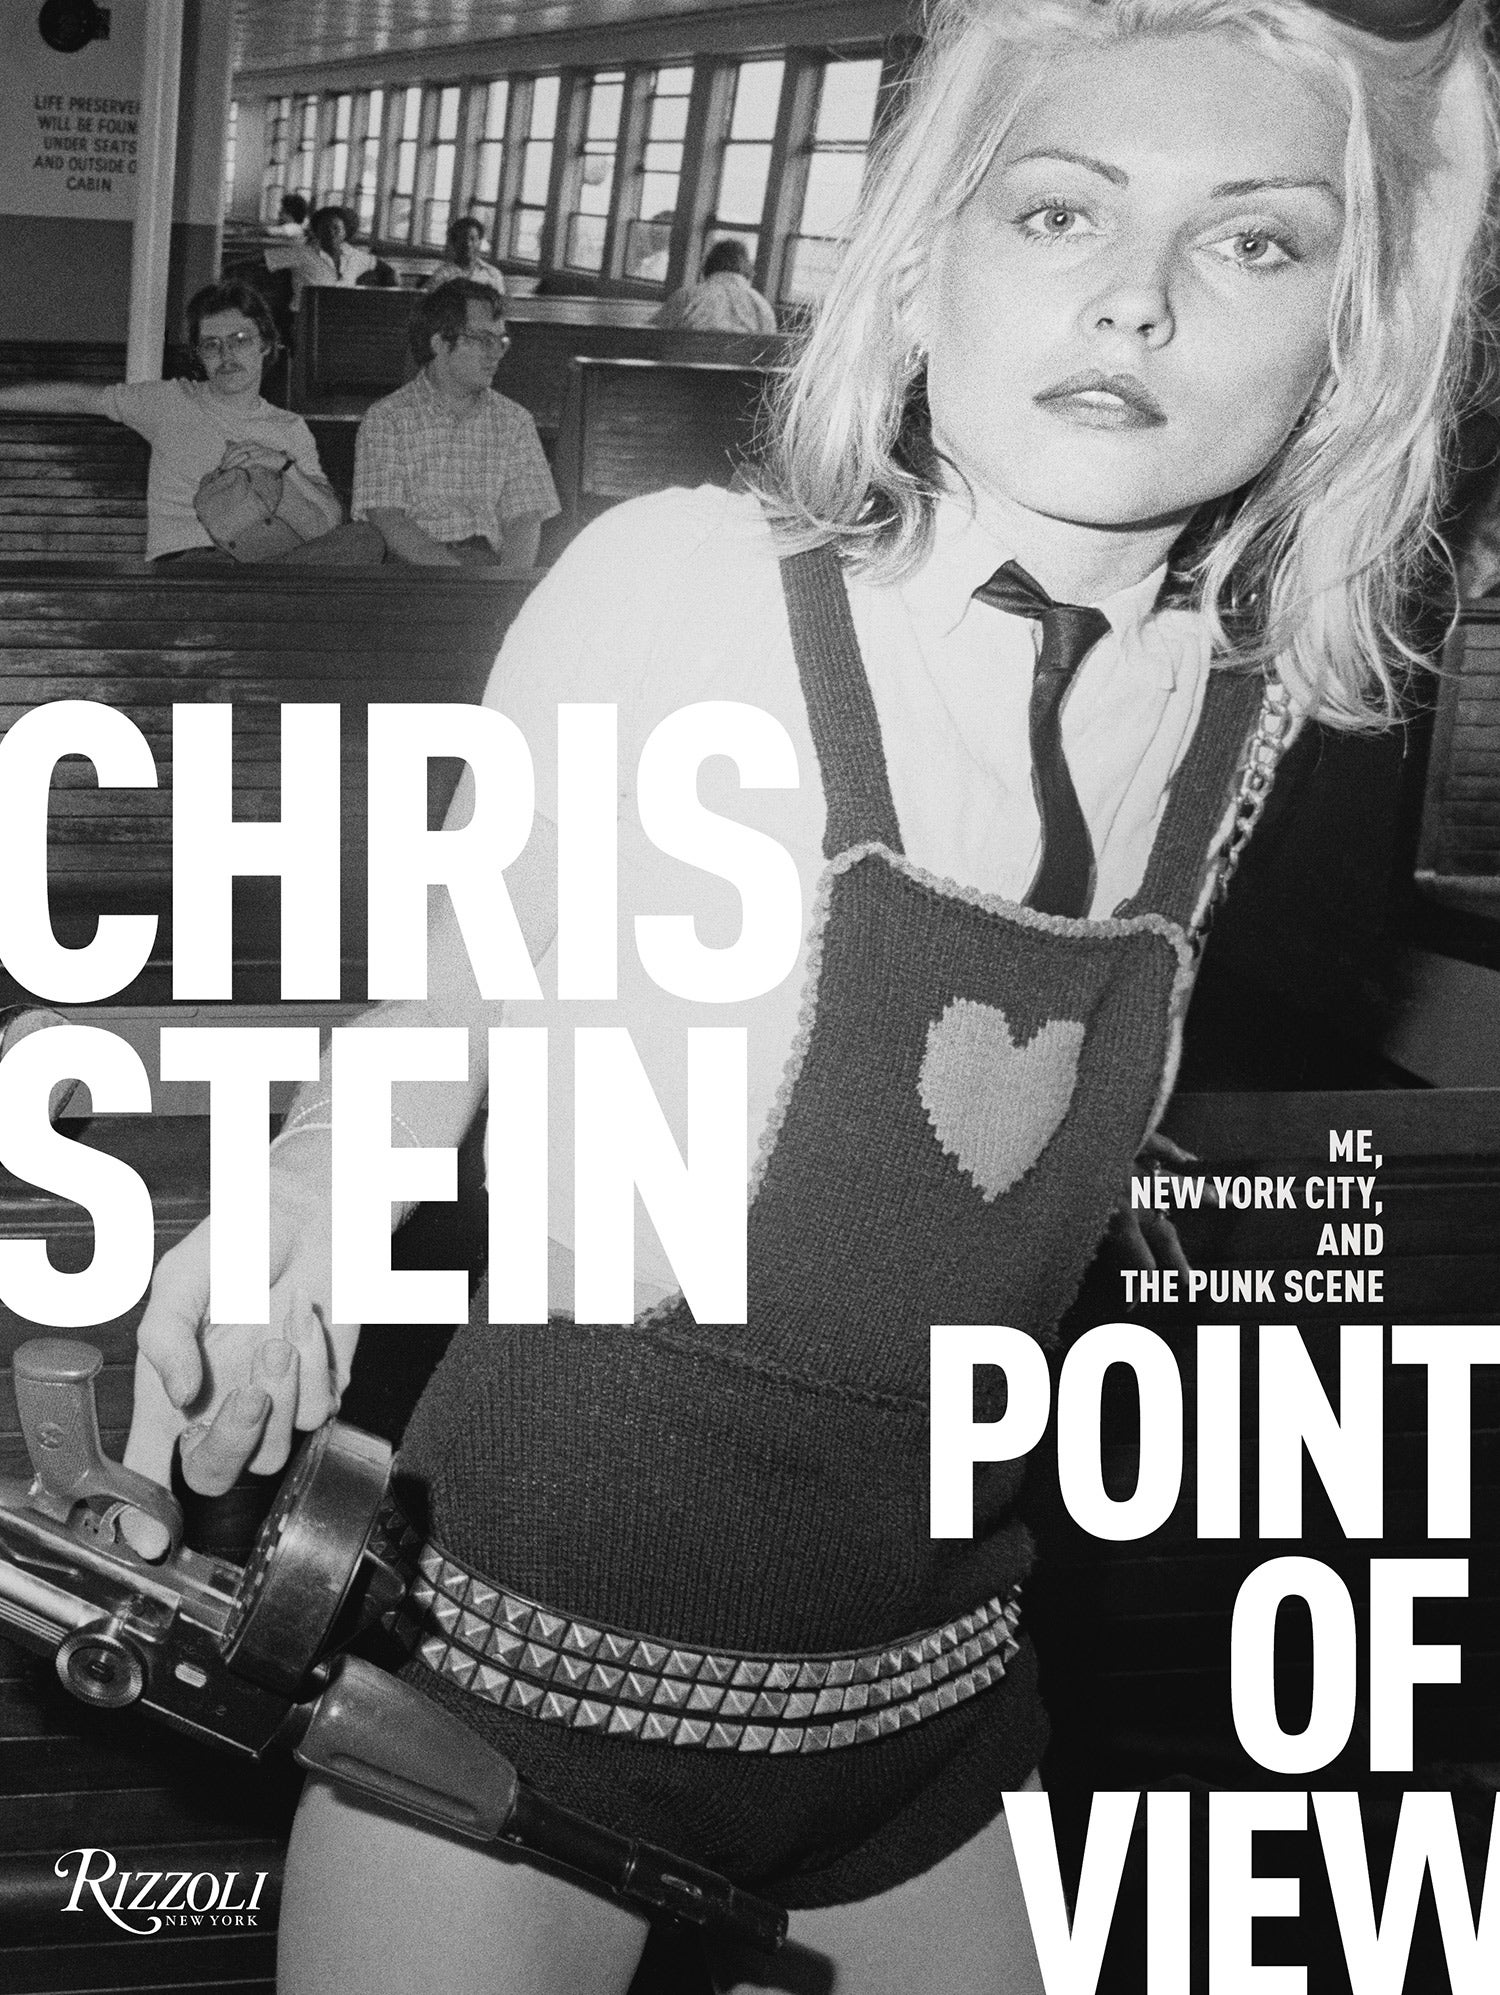 Chris Stein point of View